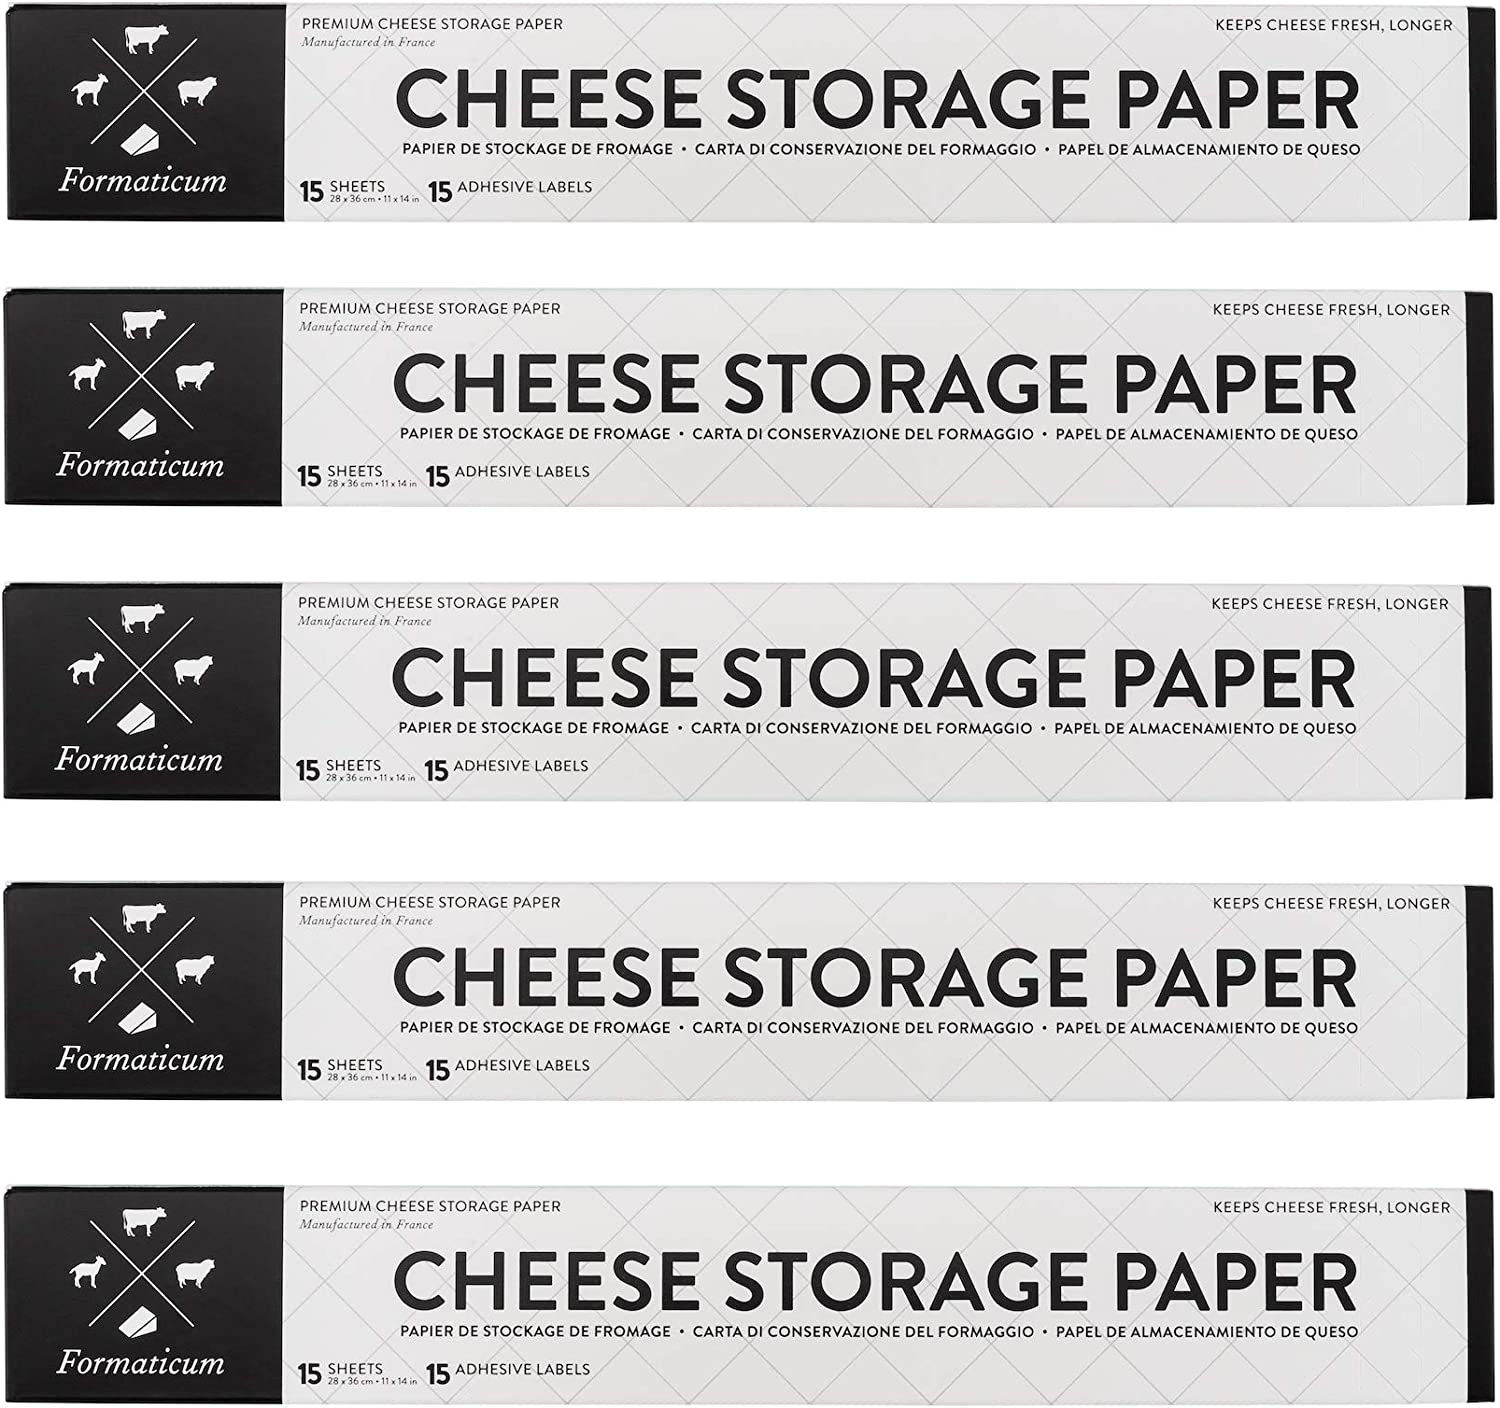 Formaticum Cheese security Storage Bargain Wax-Coated Charcuterie Paper Fre Keep